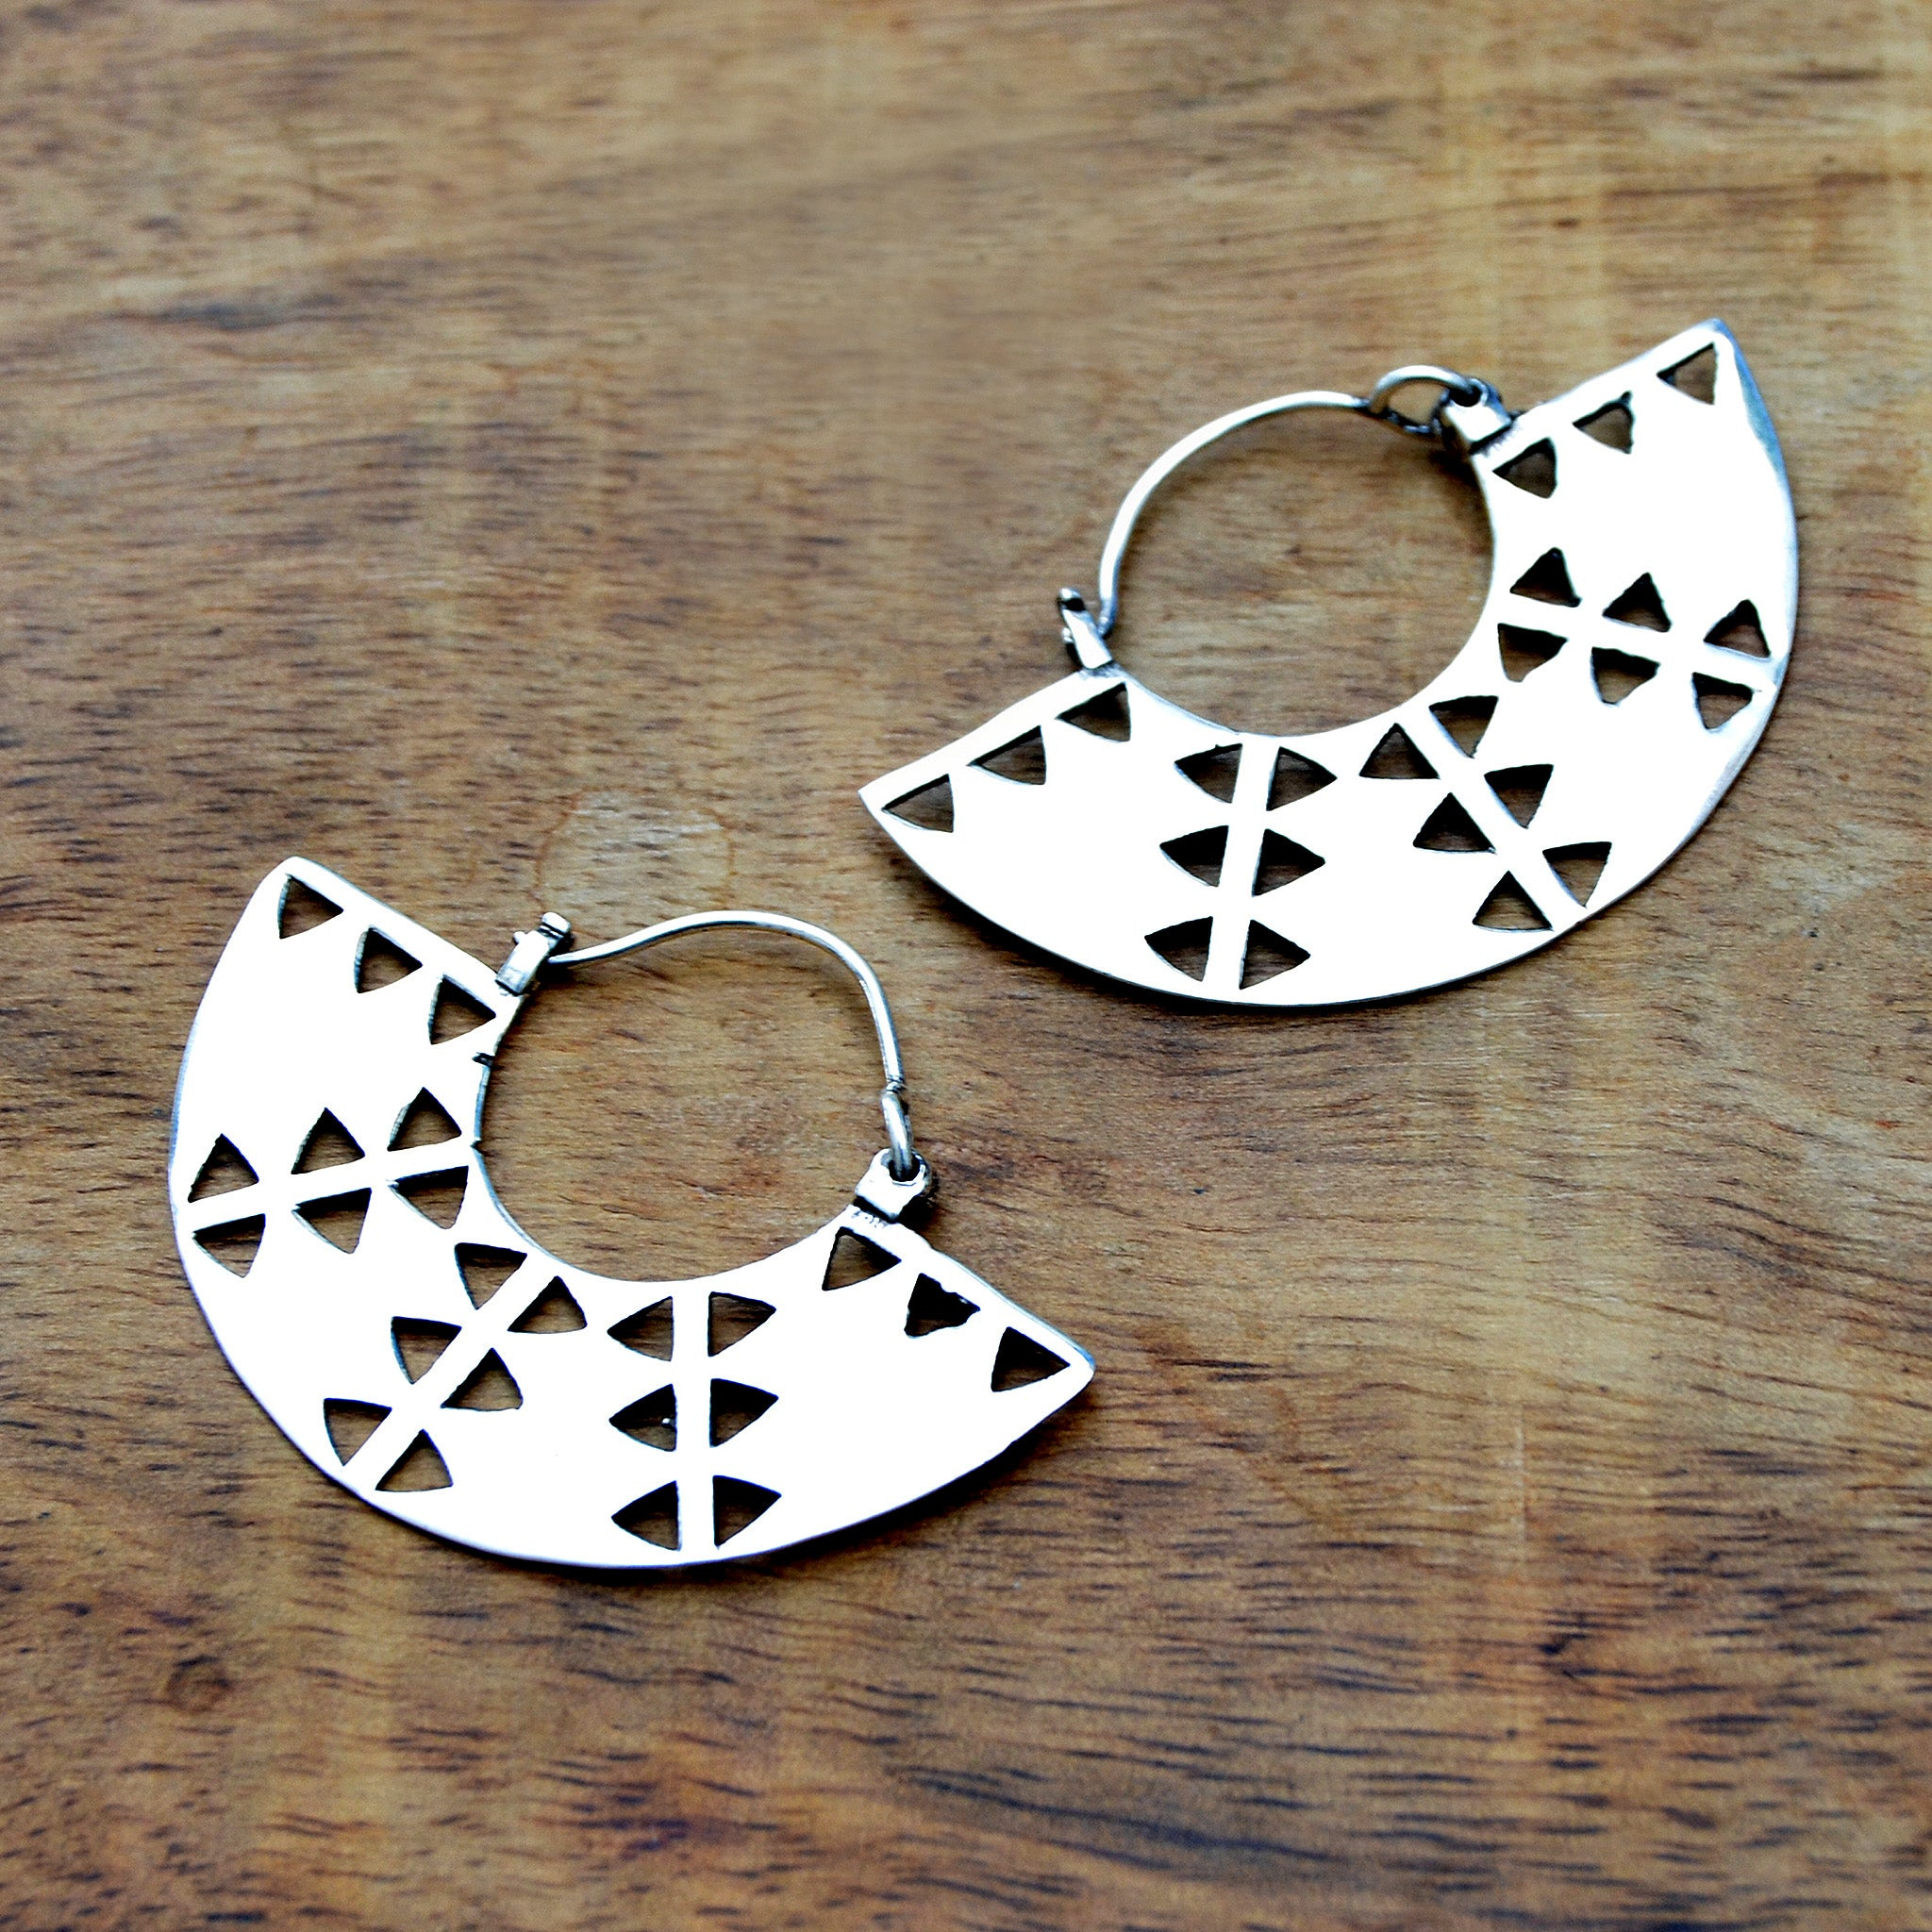 silver hoiops earring